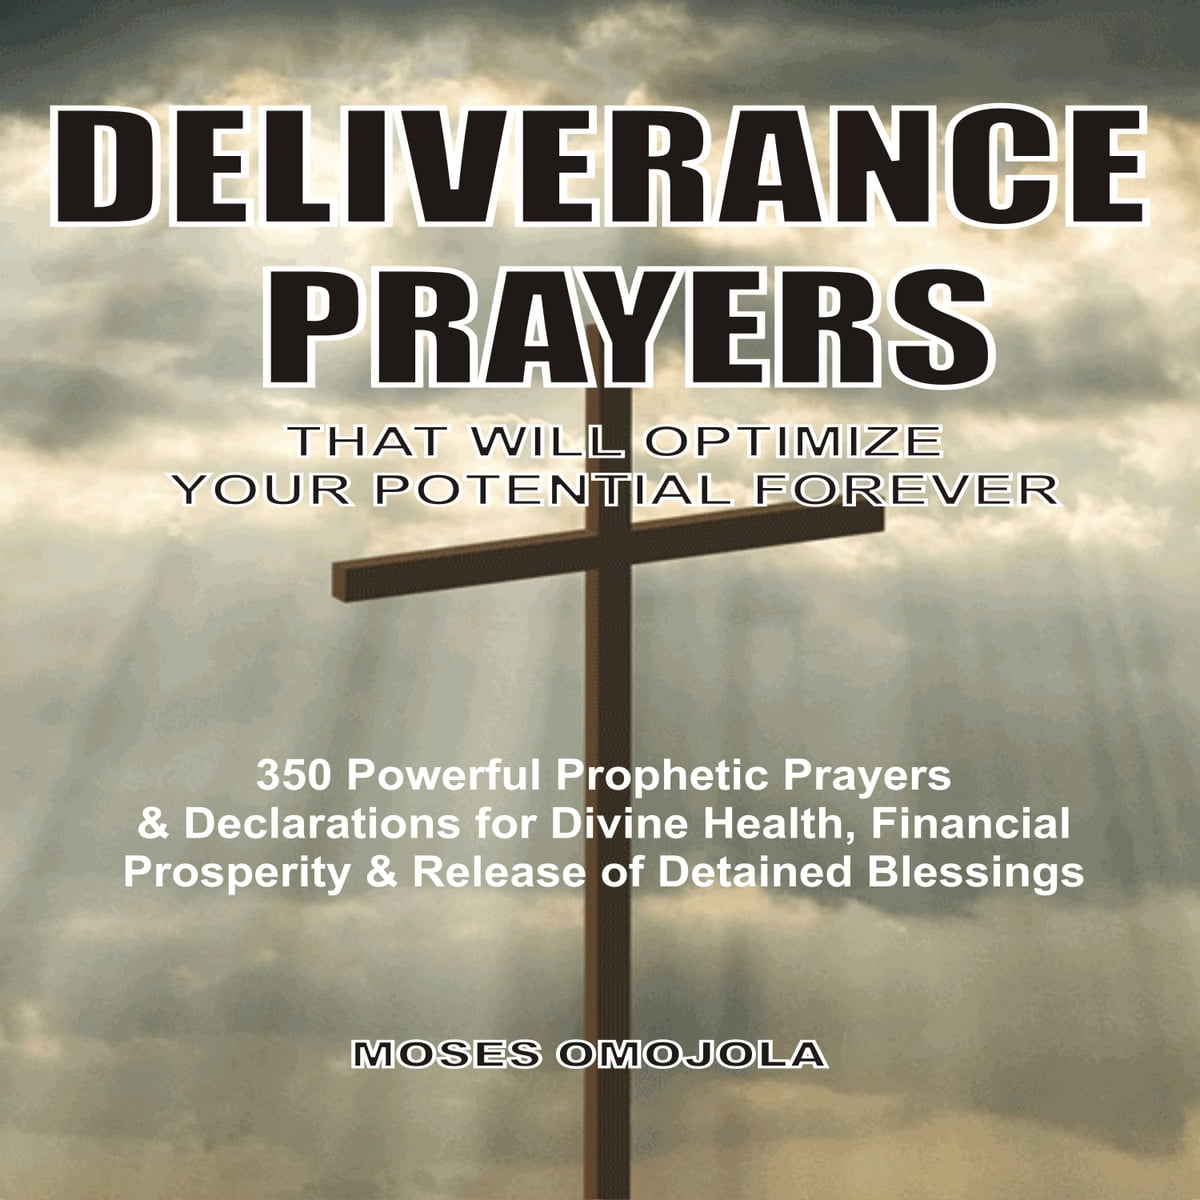 Deliverance Prayers That Will Optimize Your Potential Forever audiobook by  Moses Omojola - Rakuten Kobo